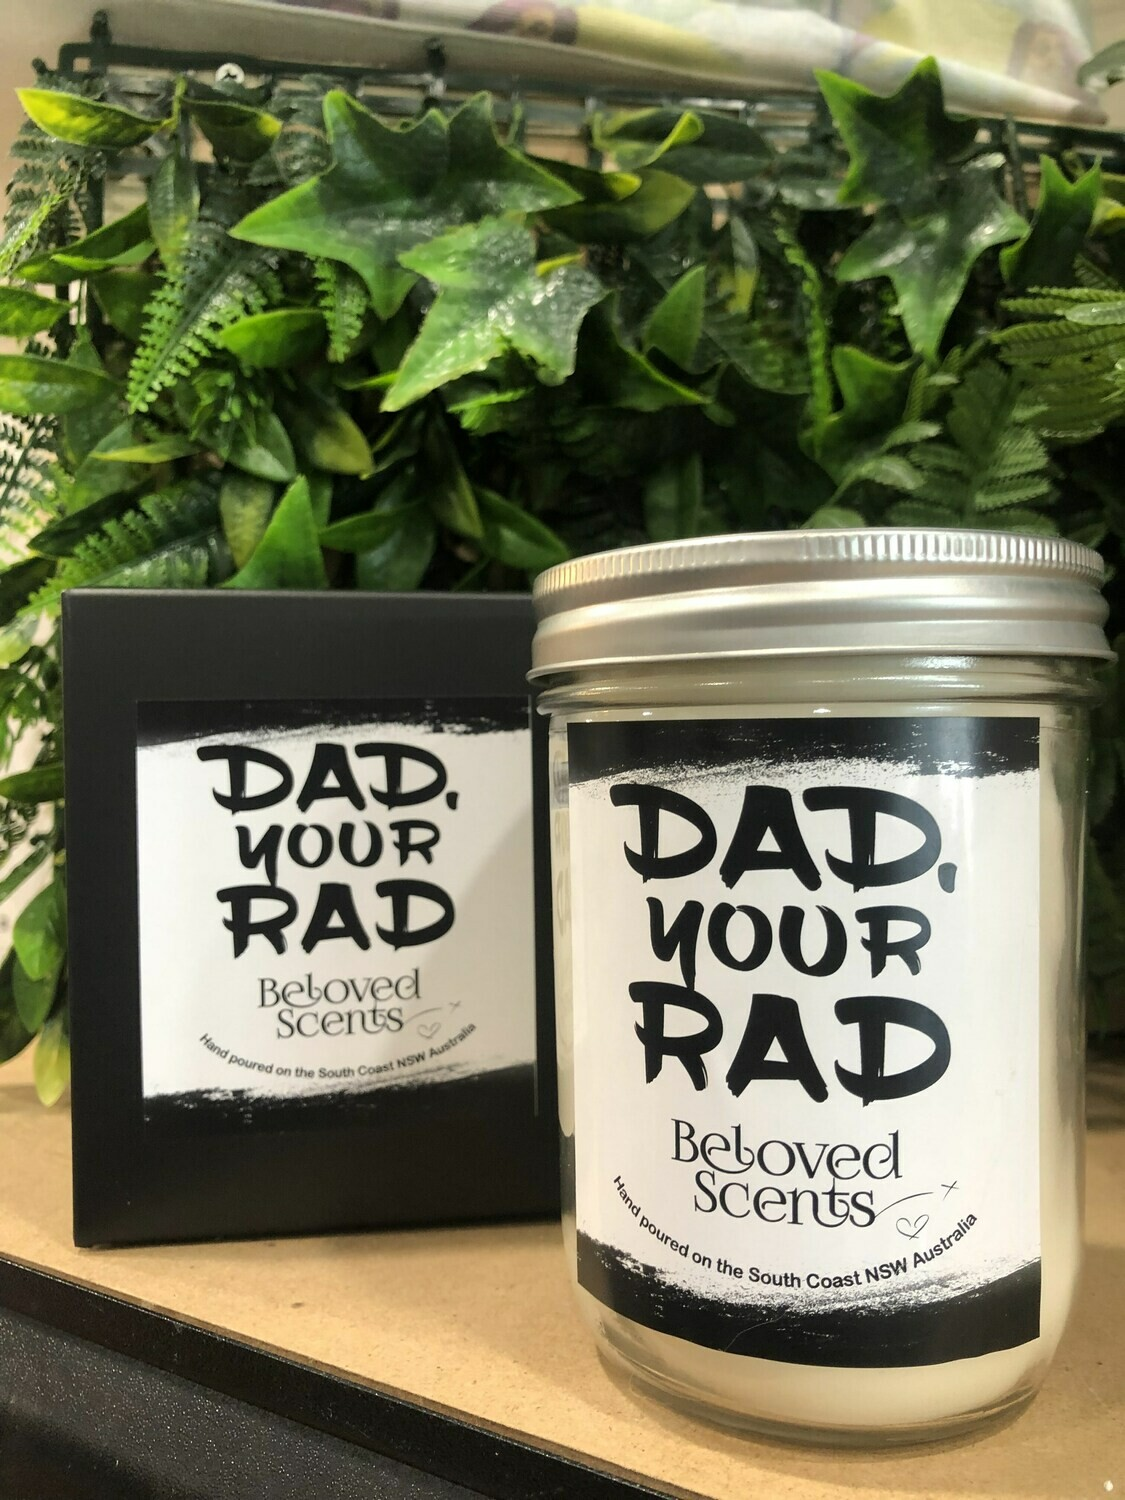 Fathers Day Collection - Dad Your Rad